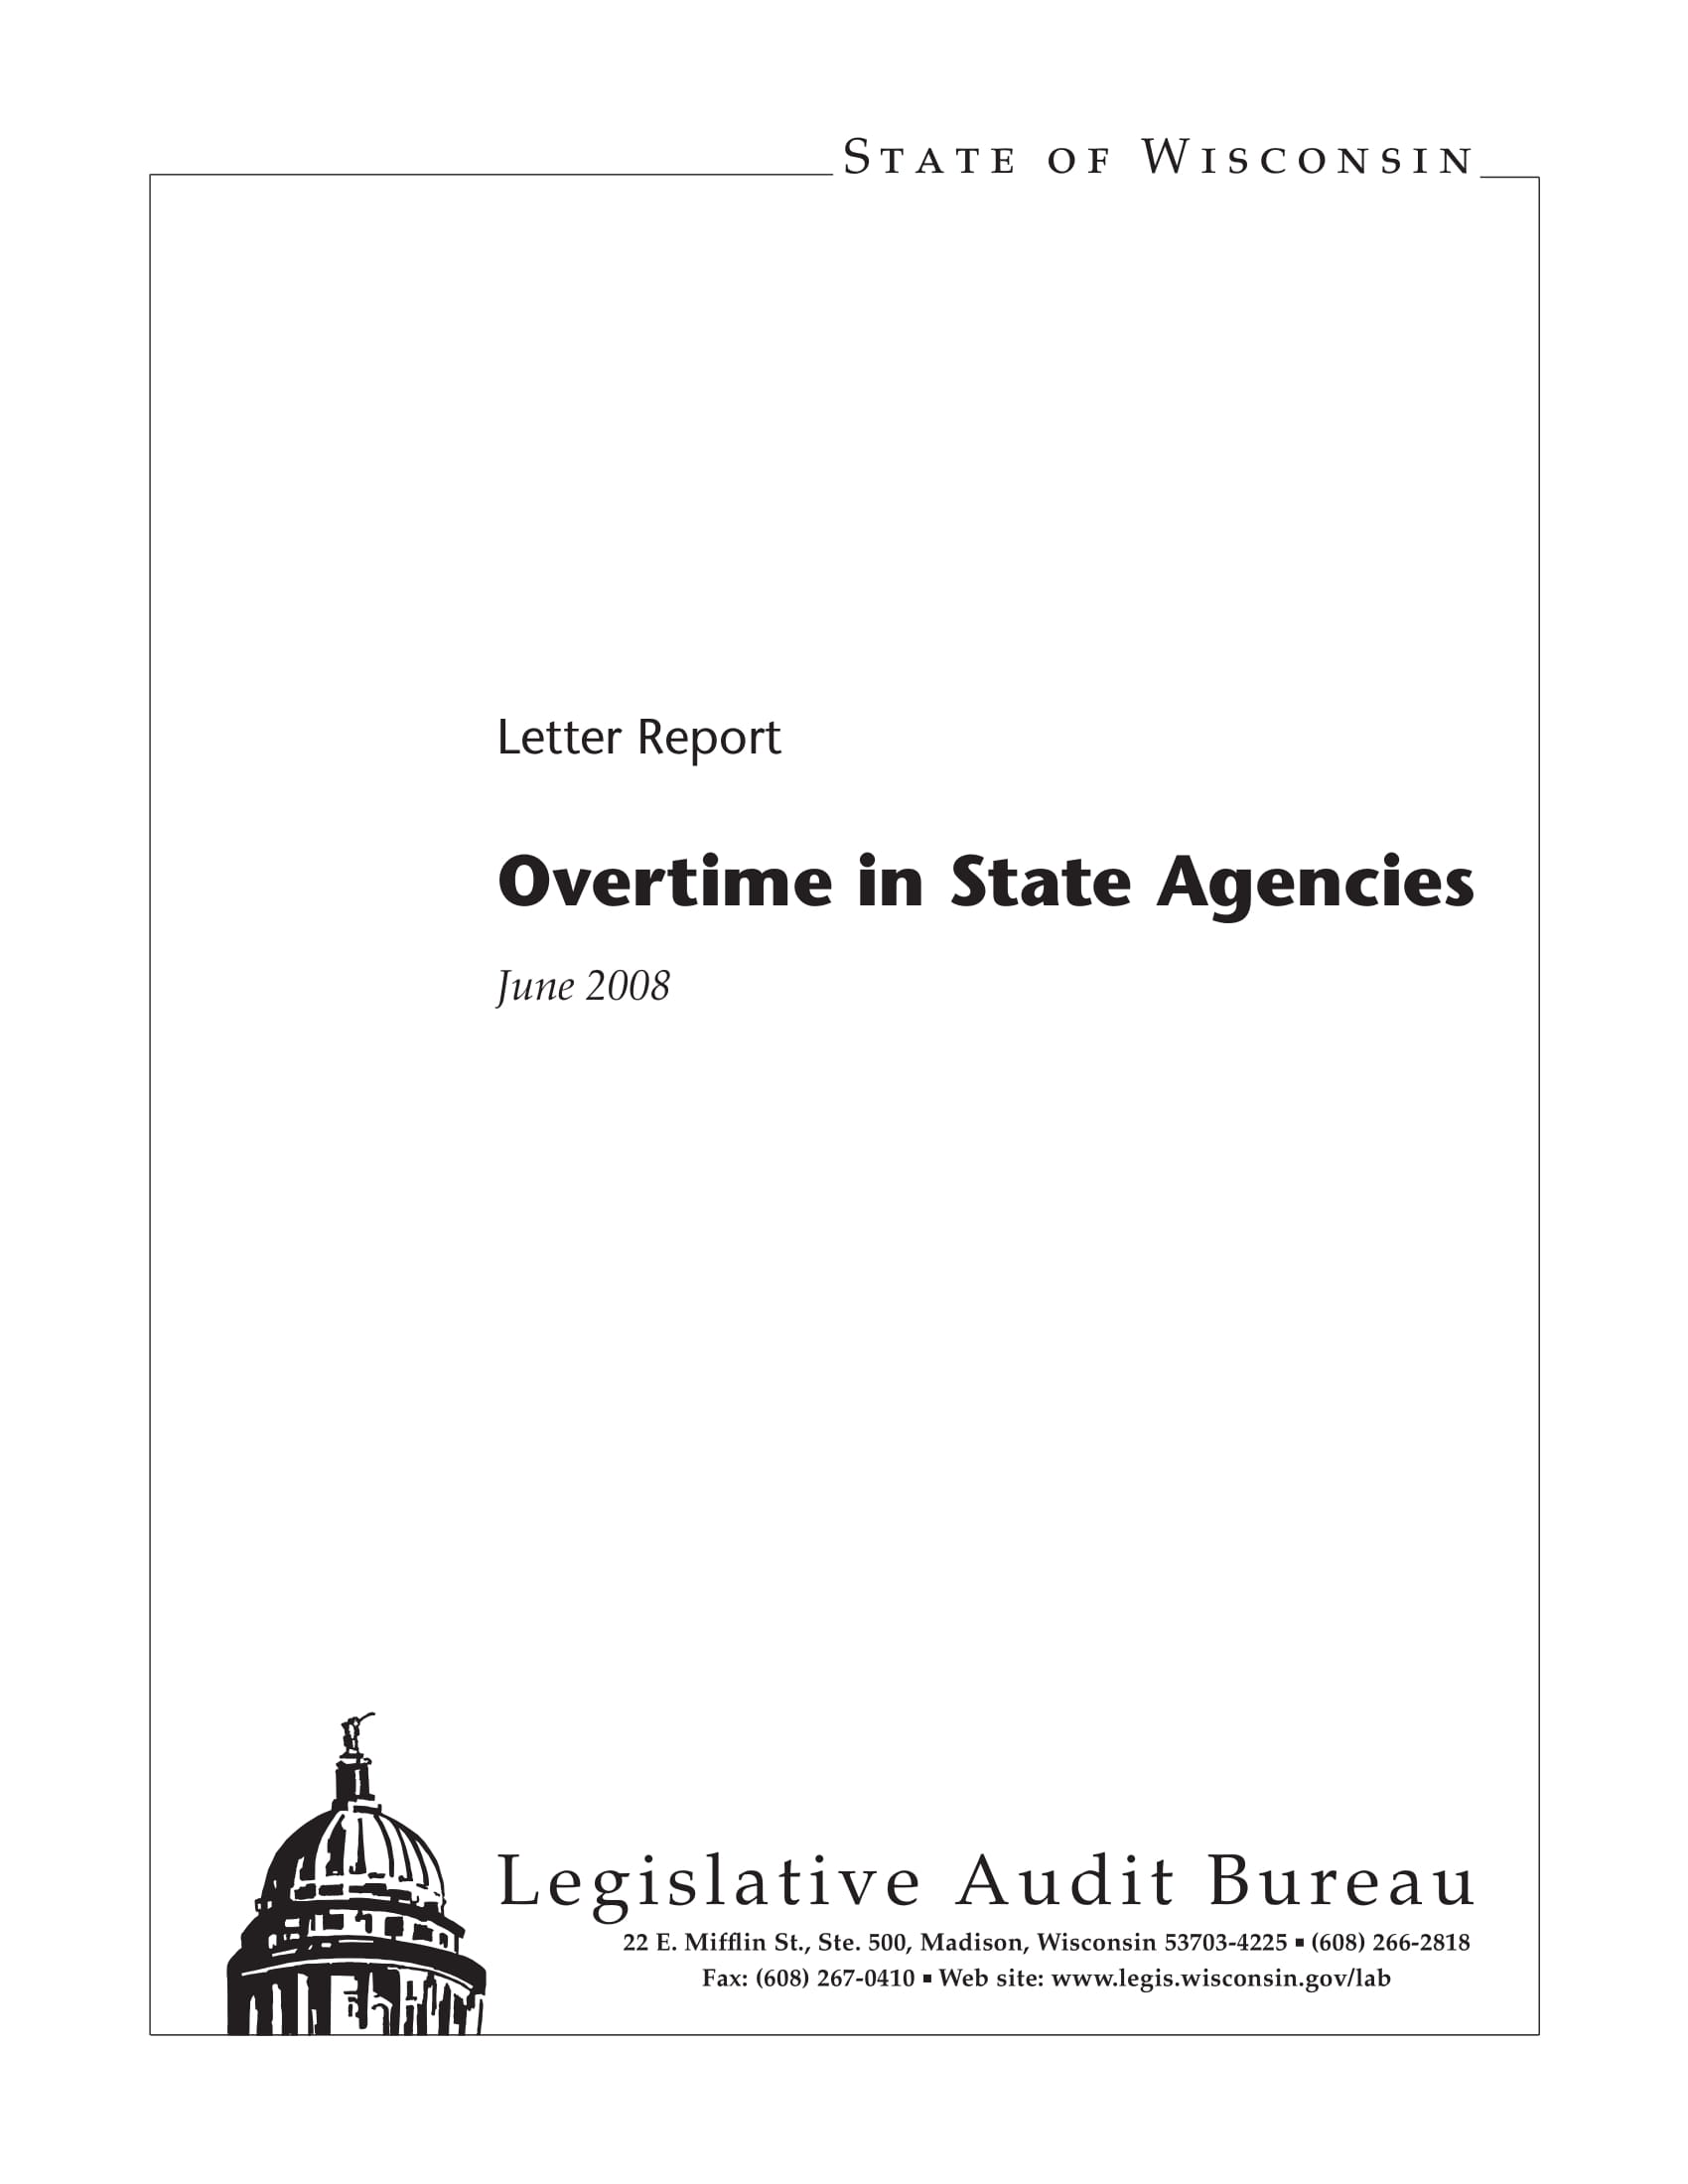 work overtime report on state agencies example